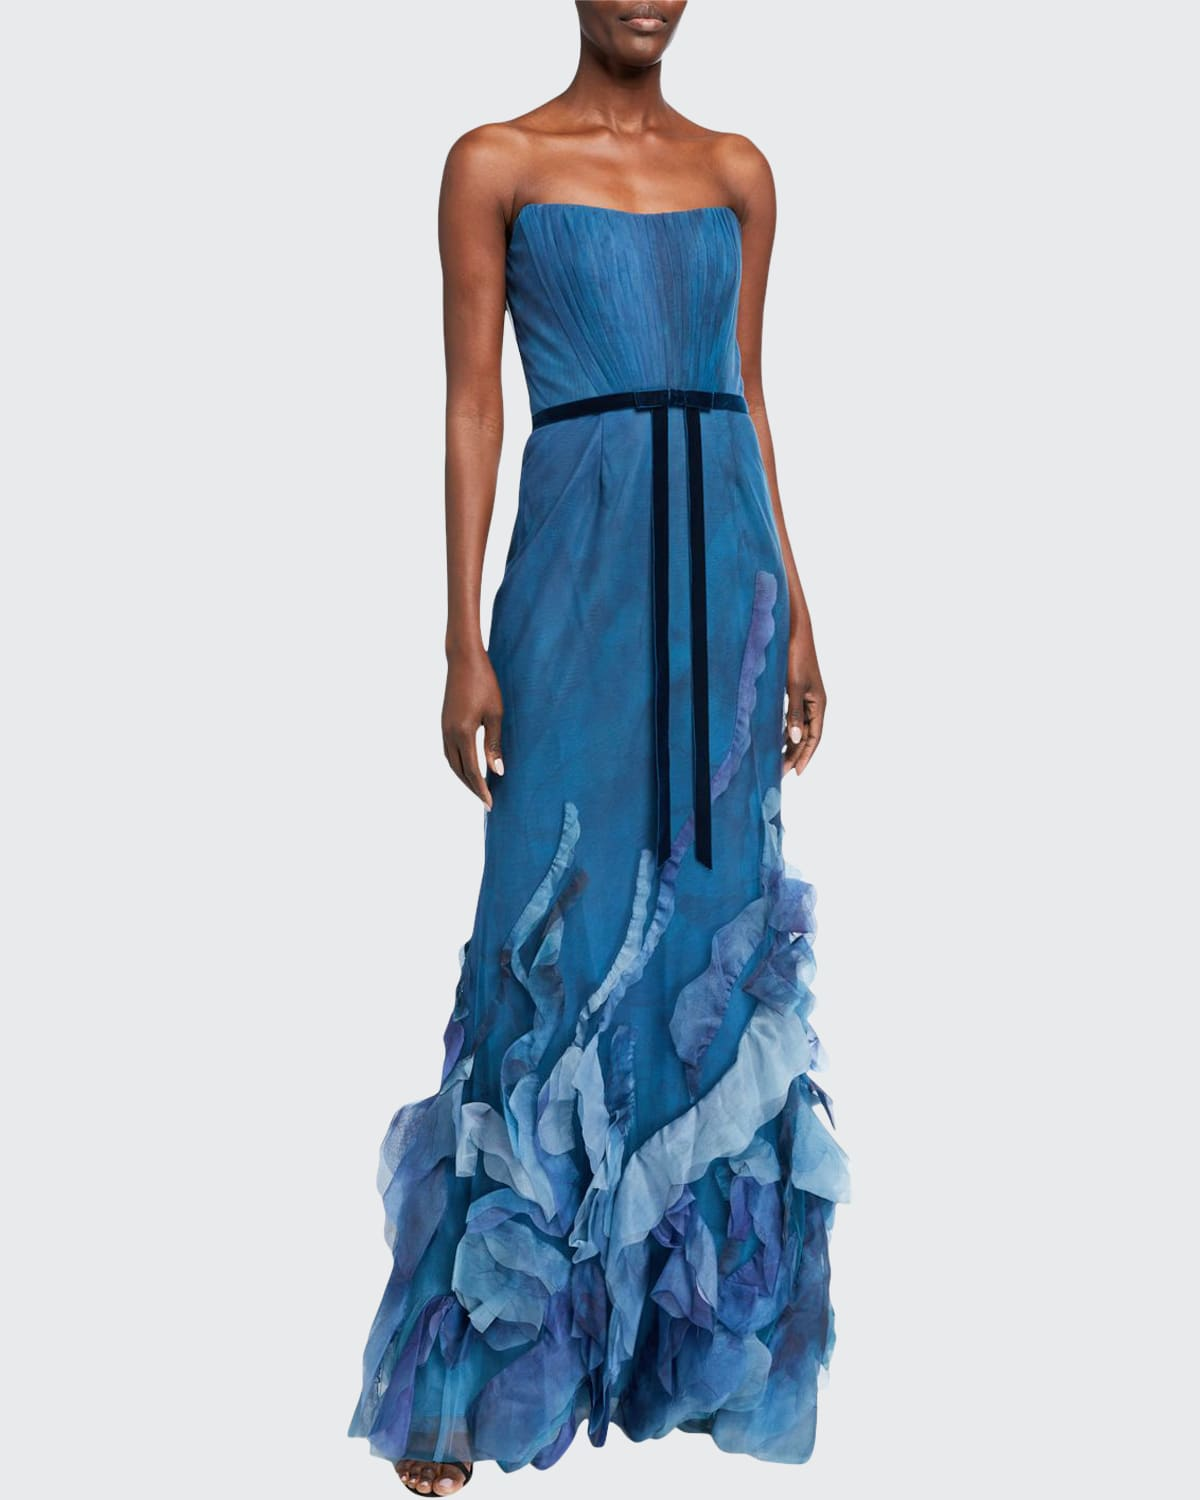 MARCHESA NOTTE Linings STRAPLESS PRINTED TULLE TEXTURED GOWN